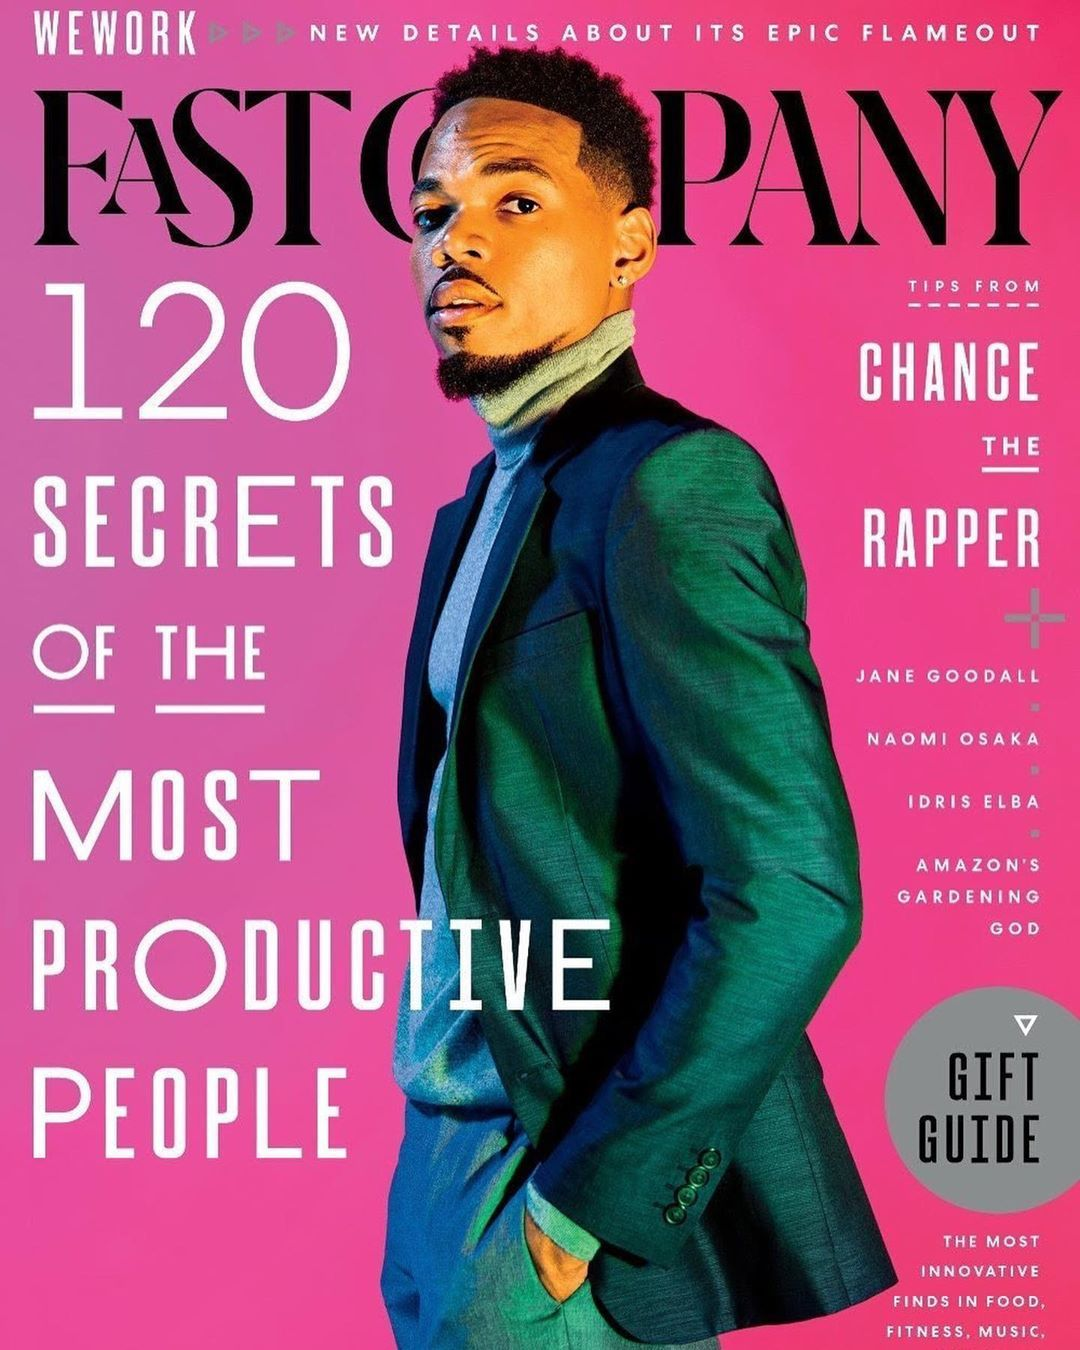 Black Magazine Covers On Instagram Chancetherapper By Mamadivisuals For Fastcompany Blackmagcovers Black Fast Company Magazine Chance The Rapper Rapper